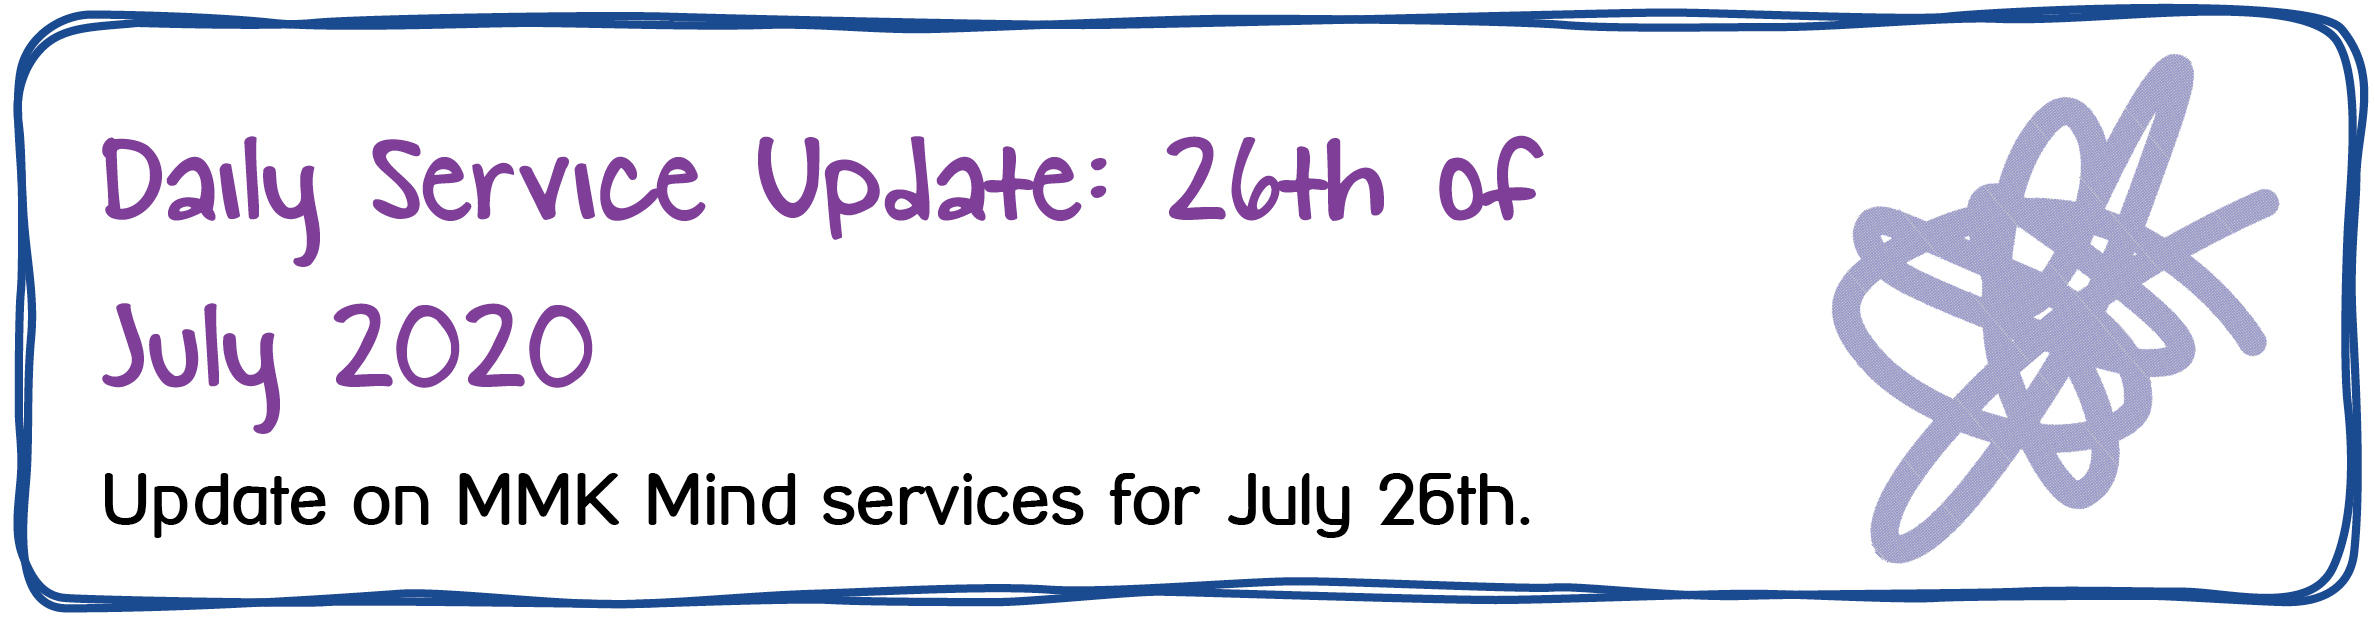 Daily Service Update: 26th of July 2020. Update on MMK Mind services for July 26th.